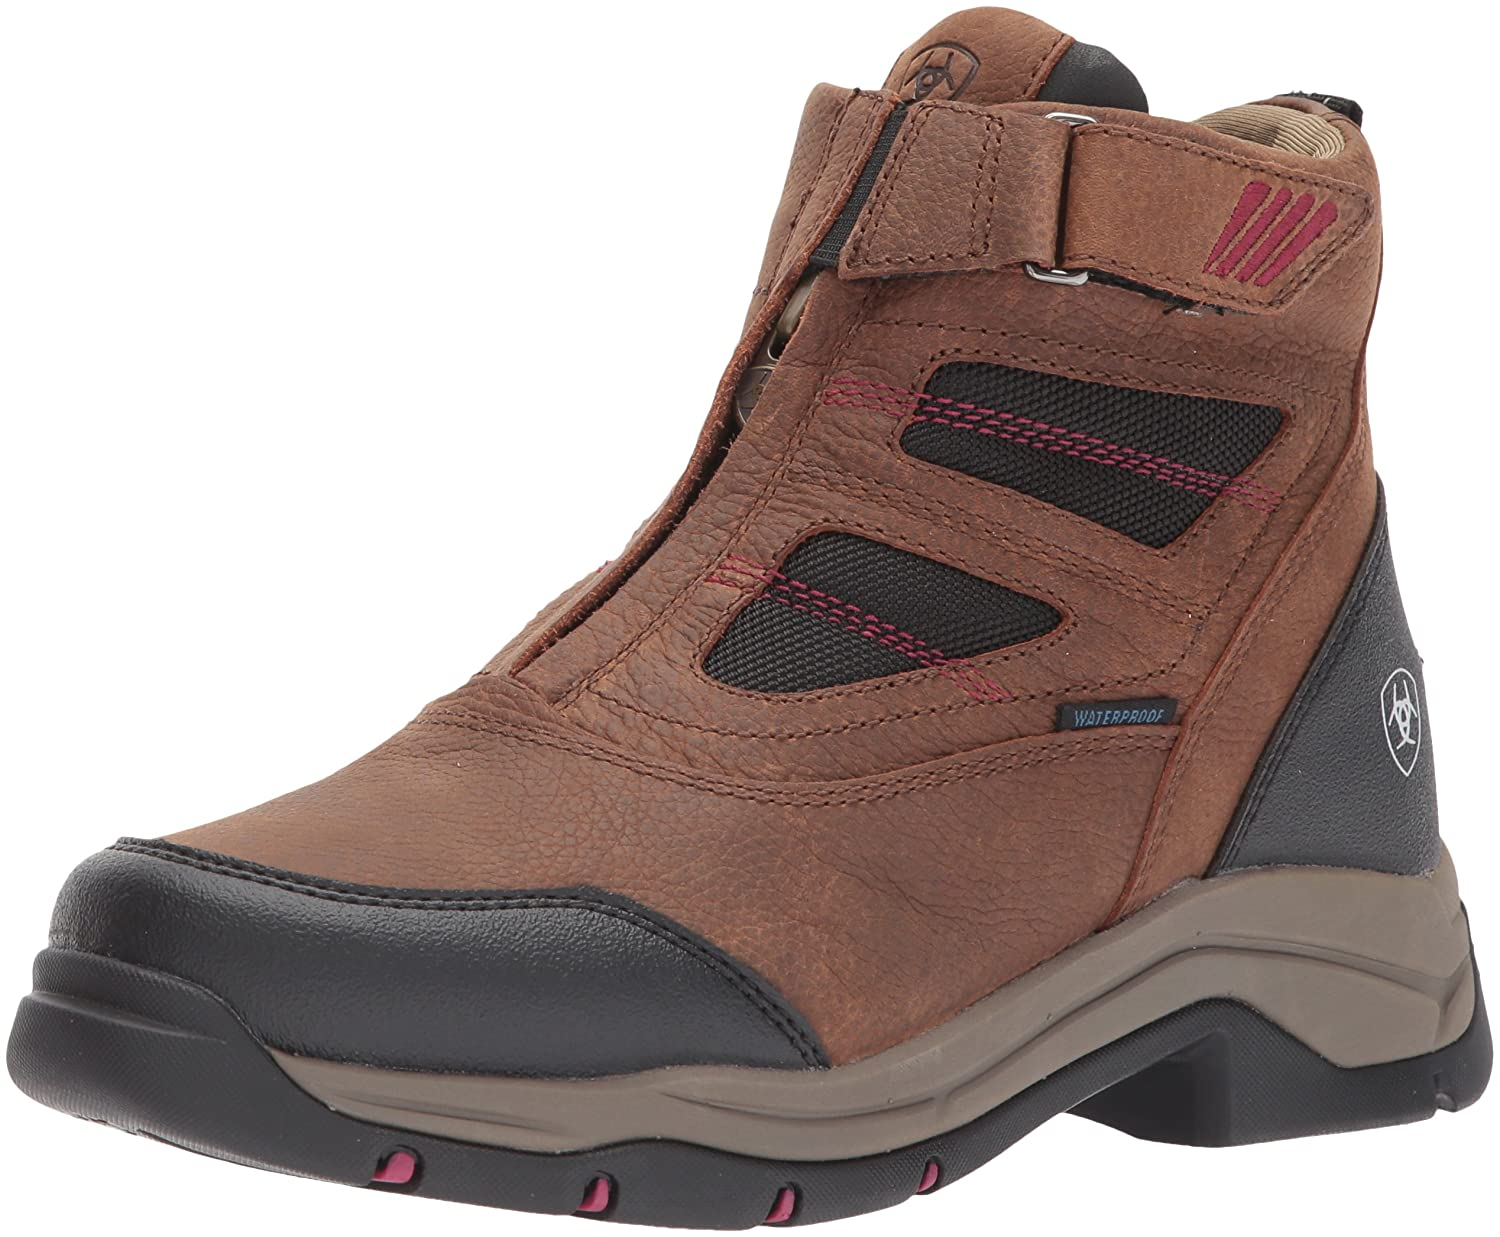 Ariat Women's Terrain Pro Zip H2O Work Boot B01N16HKLD 9 B(M) US|Brown